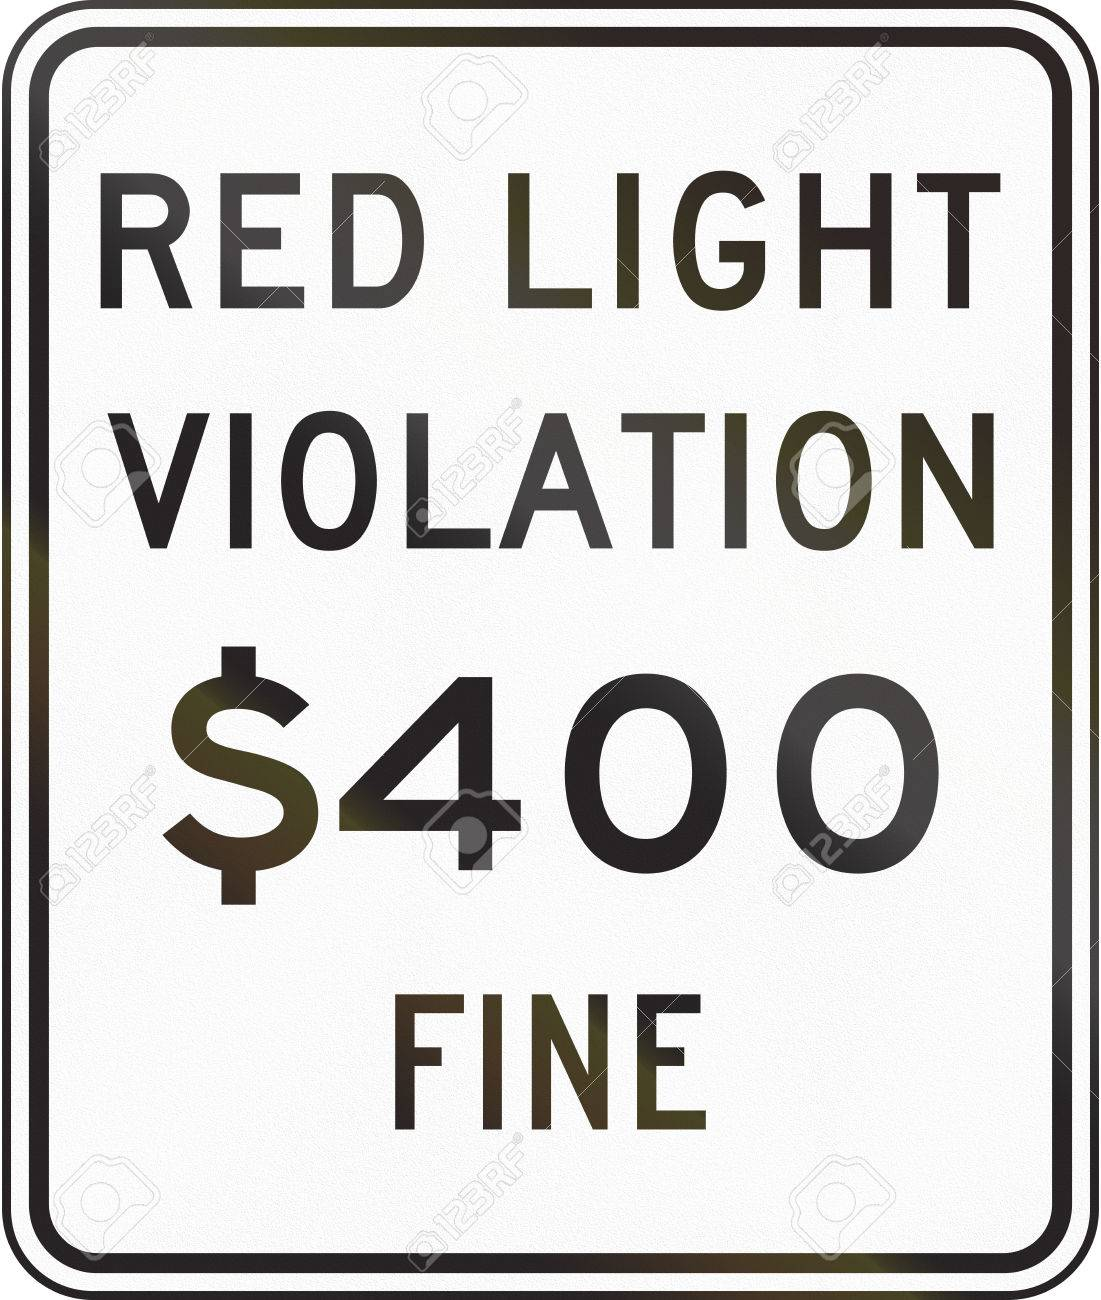 Stock Photo   United States Red Light Photo Violation Fine Sign, California